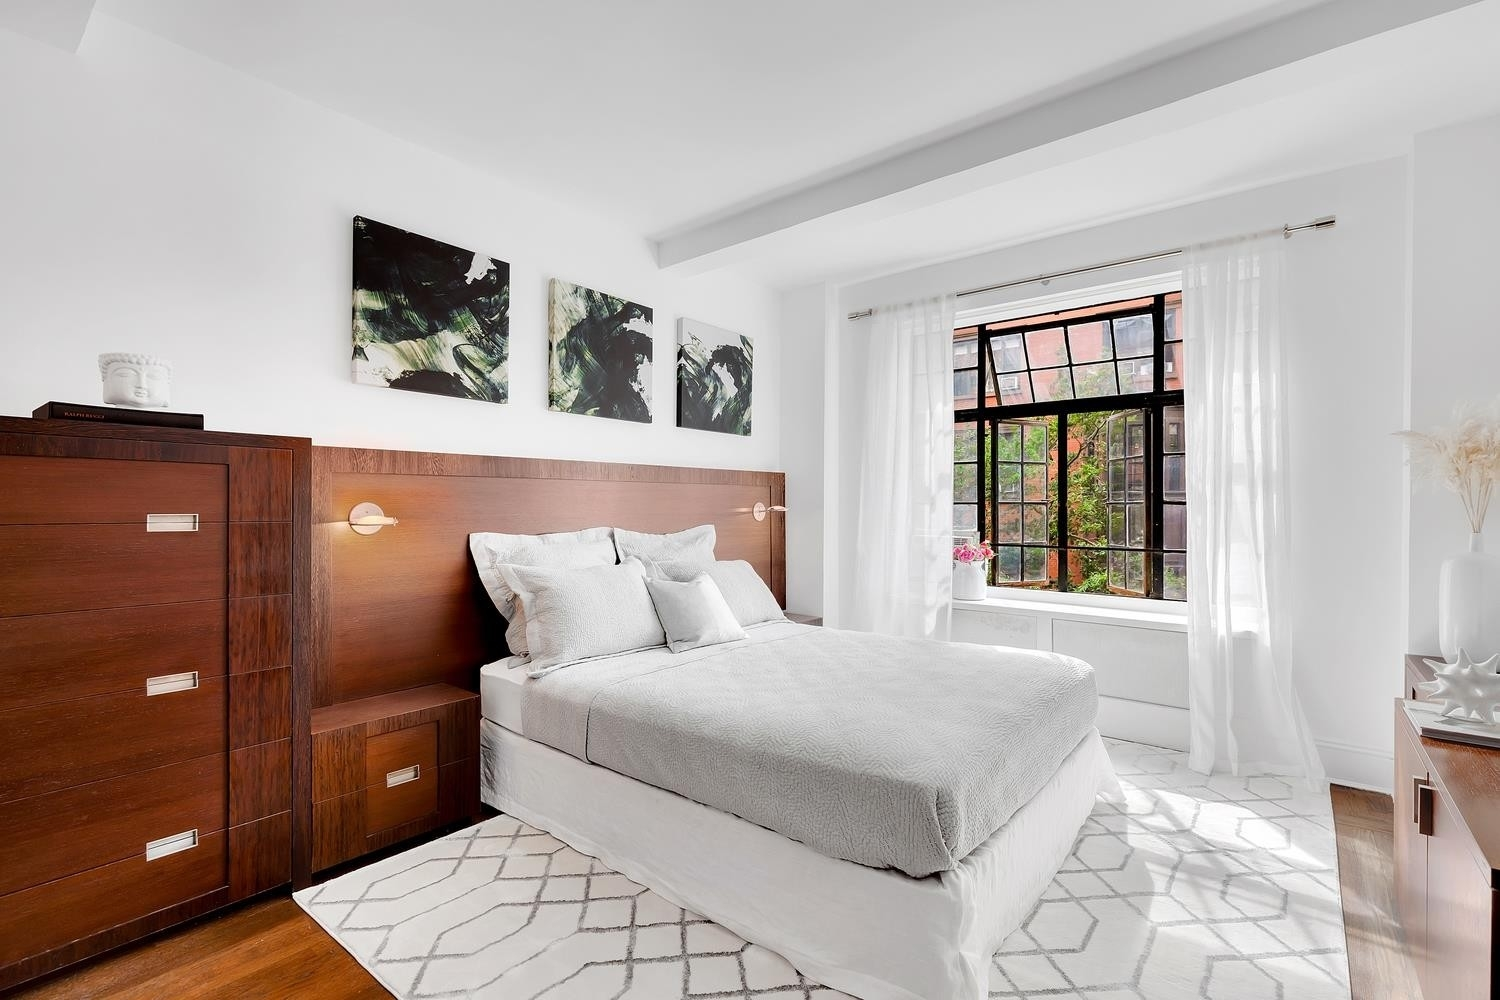 9. Co-op Properties for Sale at GRAMERCY OWNERS LTD, 44 GRAMERCY PARK N, 4C Gramercy Park, New York, NY 10010